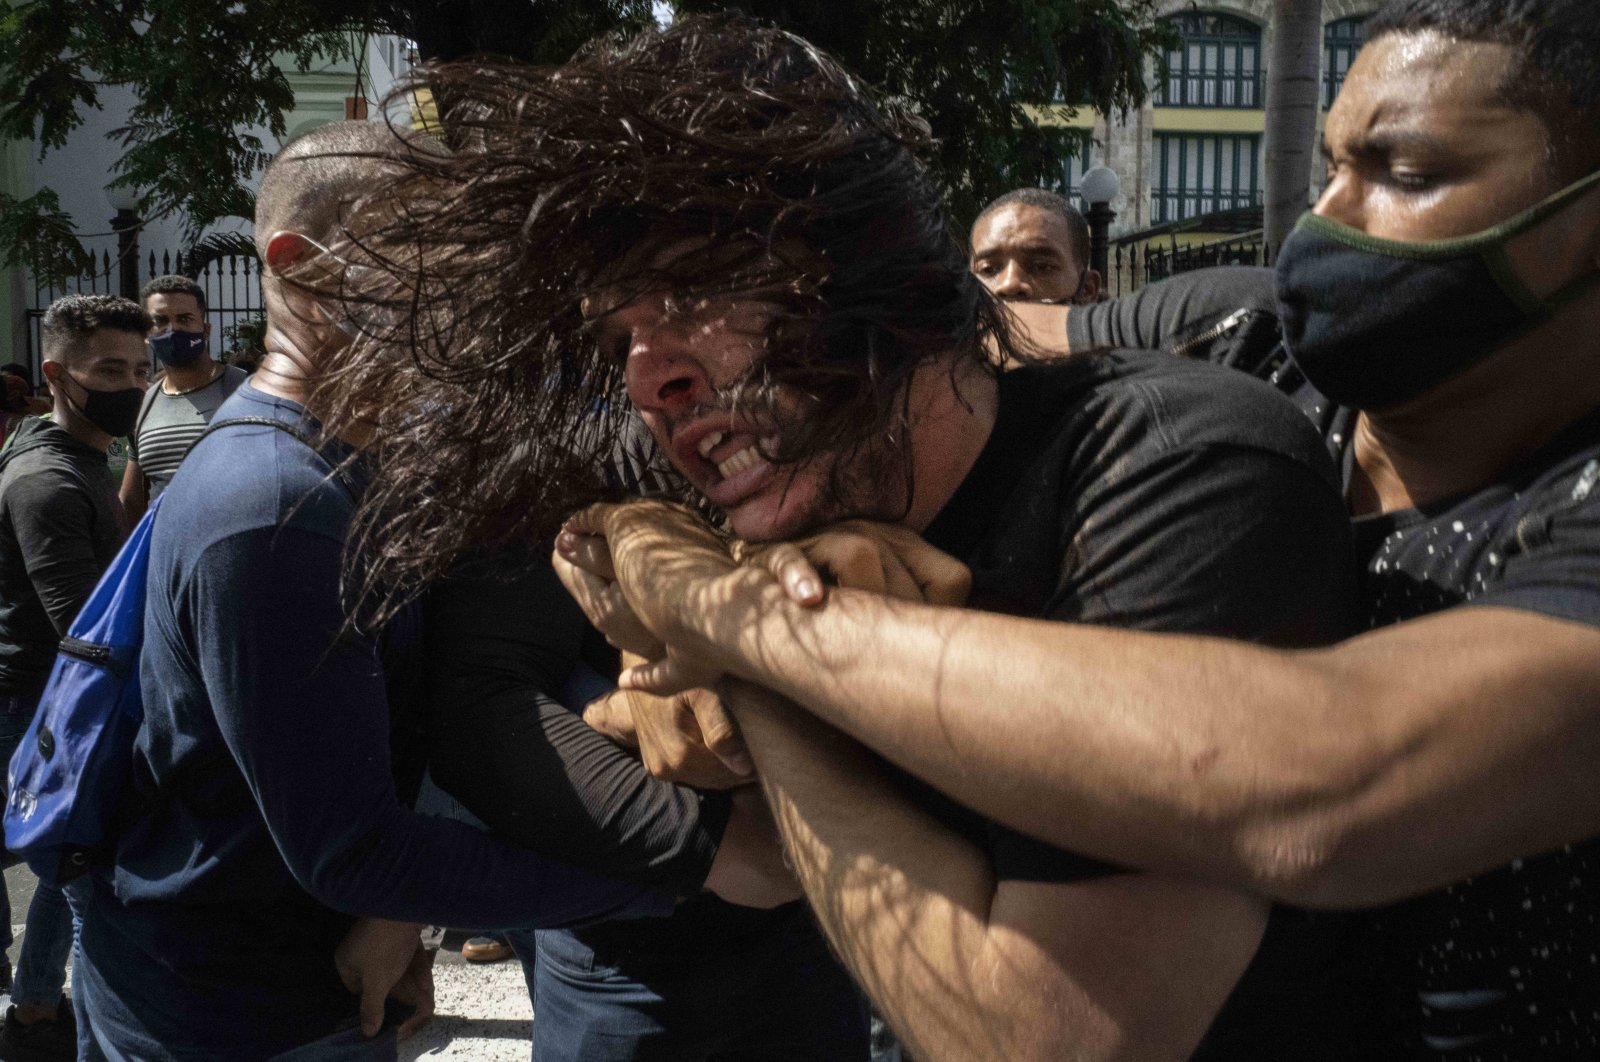 Plainclothes police detain an anti-government protester during a demonstration over high prices, food shortages and power outages, while some people also called for a change in the government, in Havana, Cuba, July 11, 2021. (AP Photo)